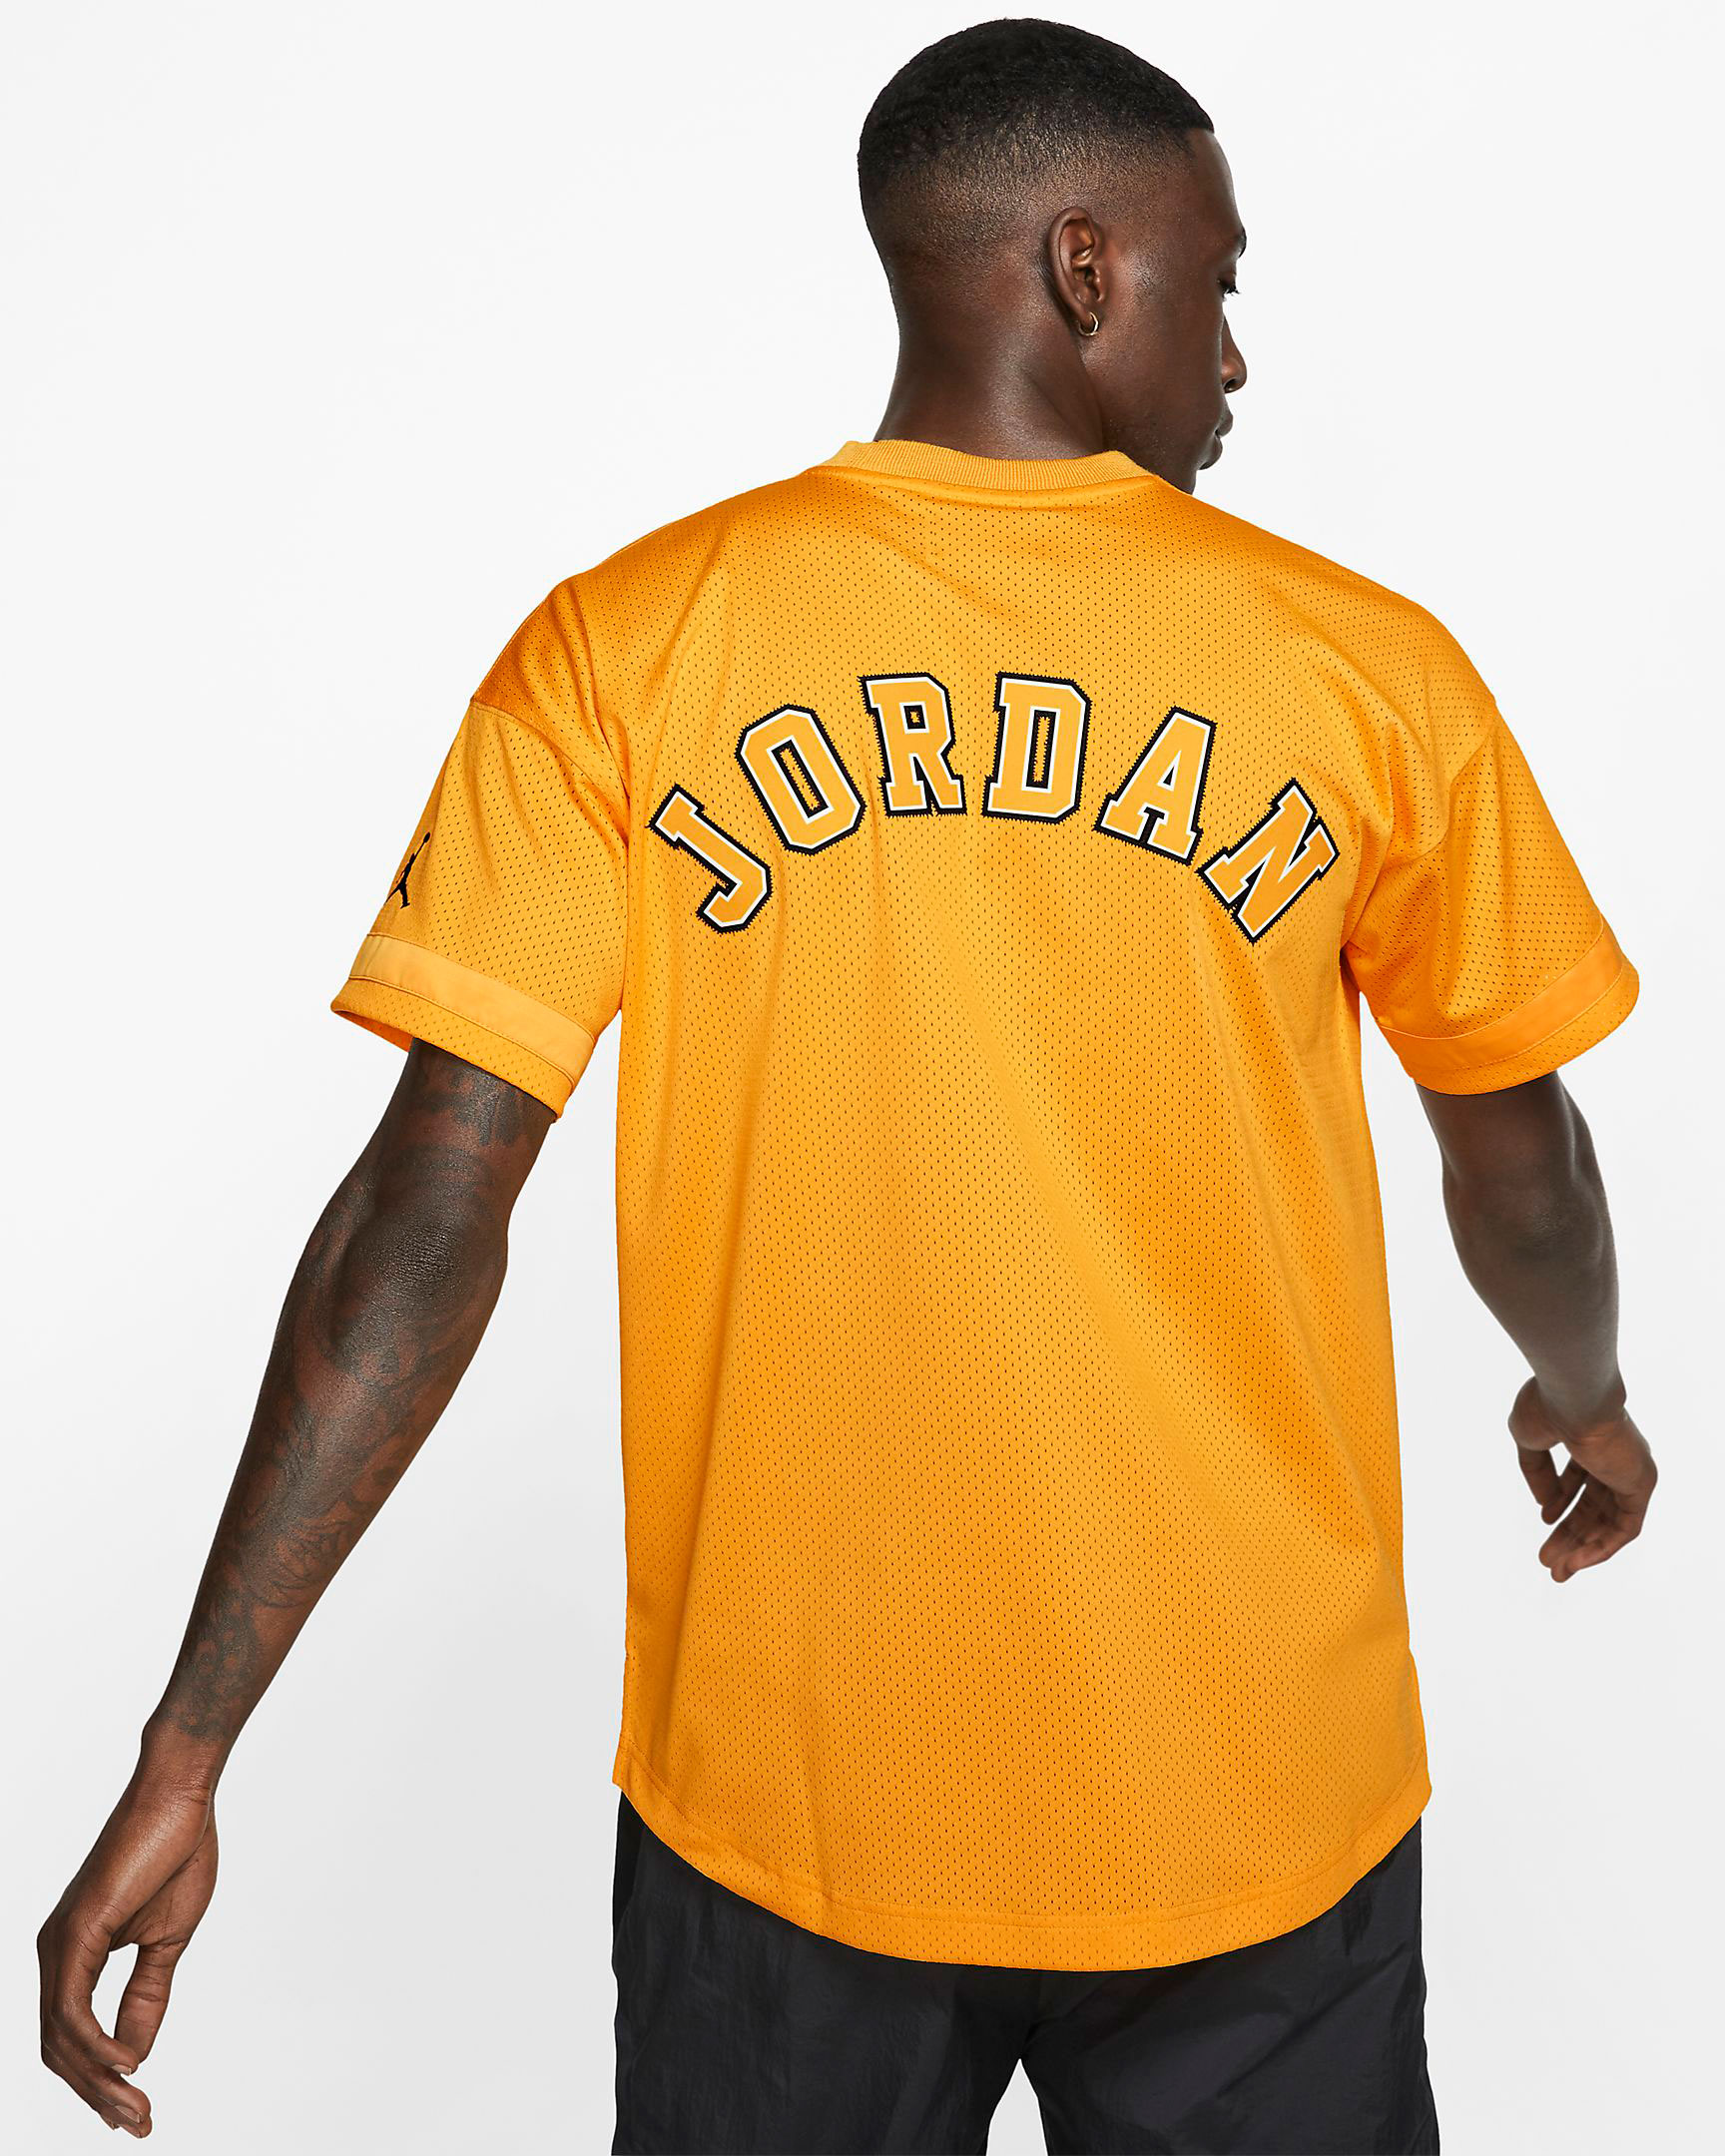 jordan-14-yellow-ferrari-jersey-shirt-match-2